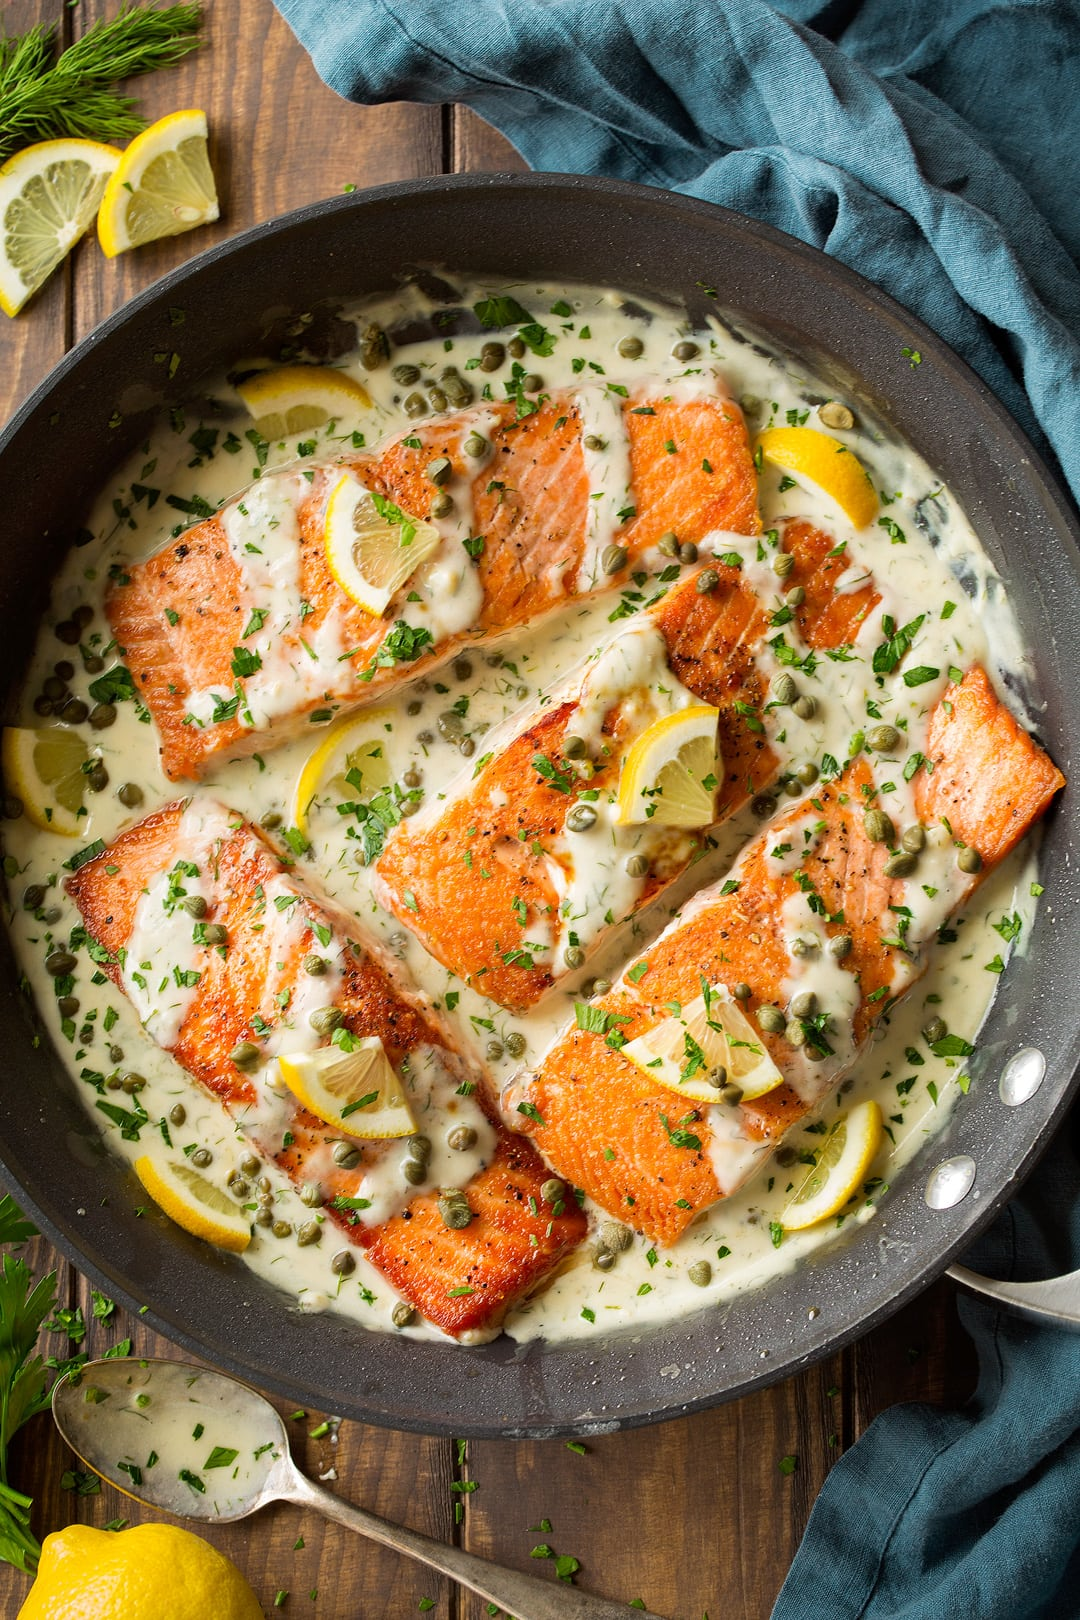 Salmon Piccata shown here in a 12-inch non-stick skillet after cooking.